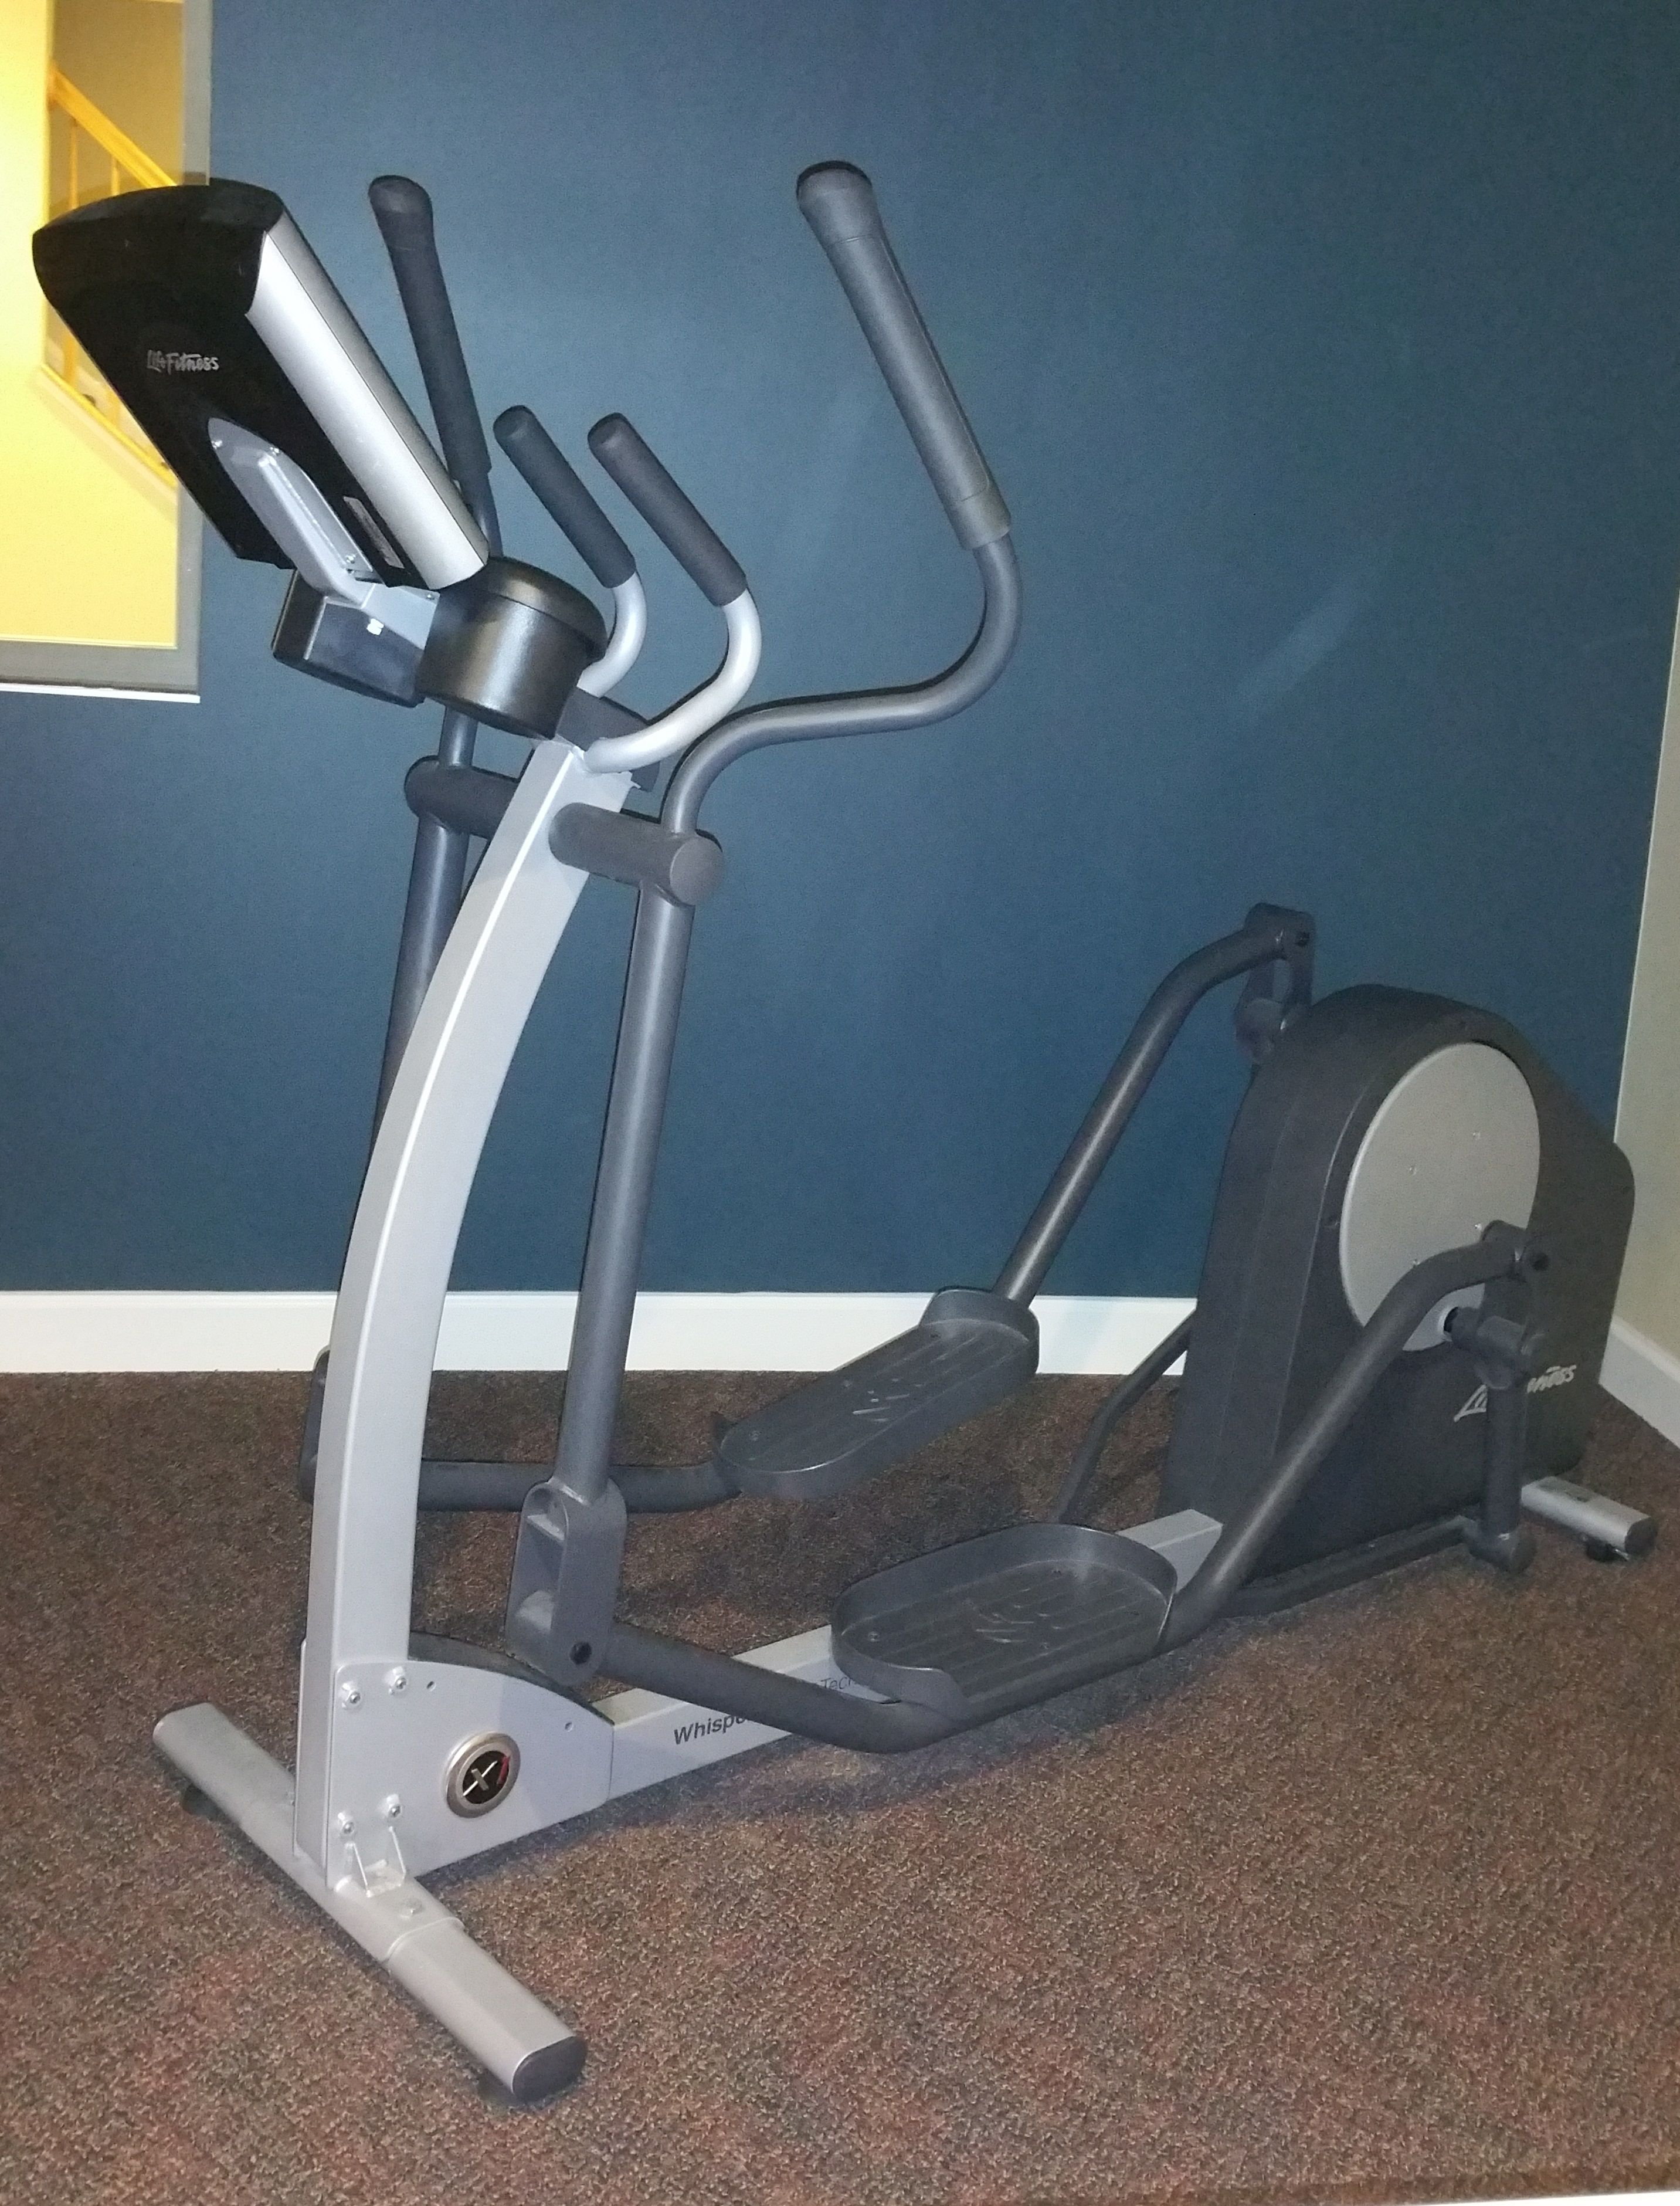 New Elliptical Assembled At Home At Home Gym Elliptical No Equipment Workout